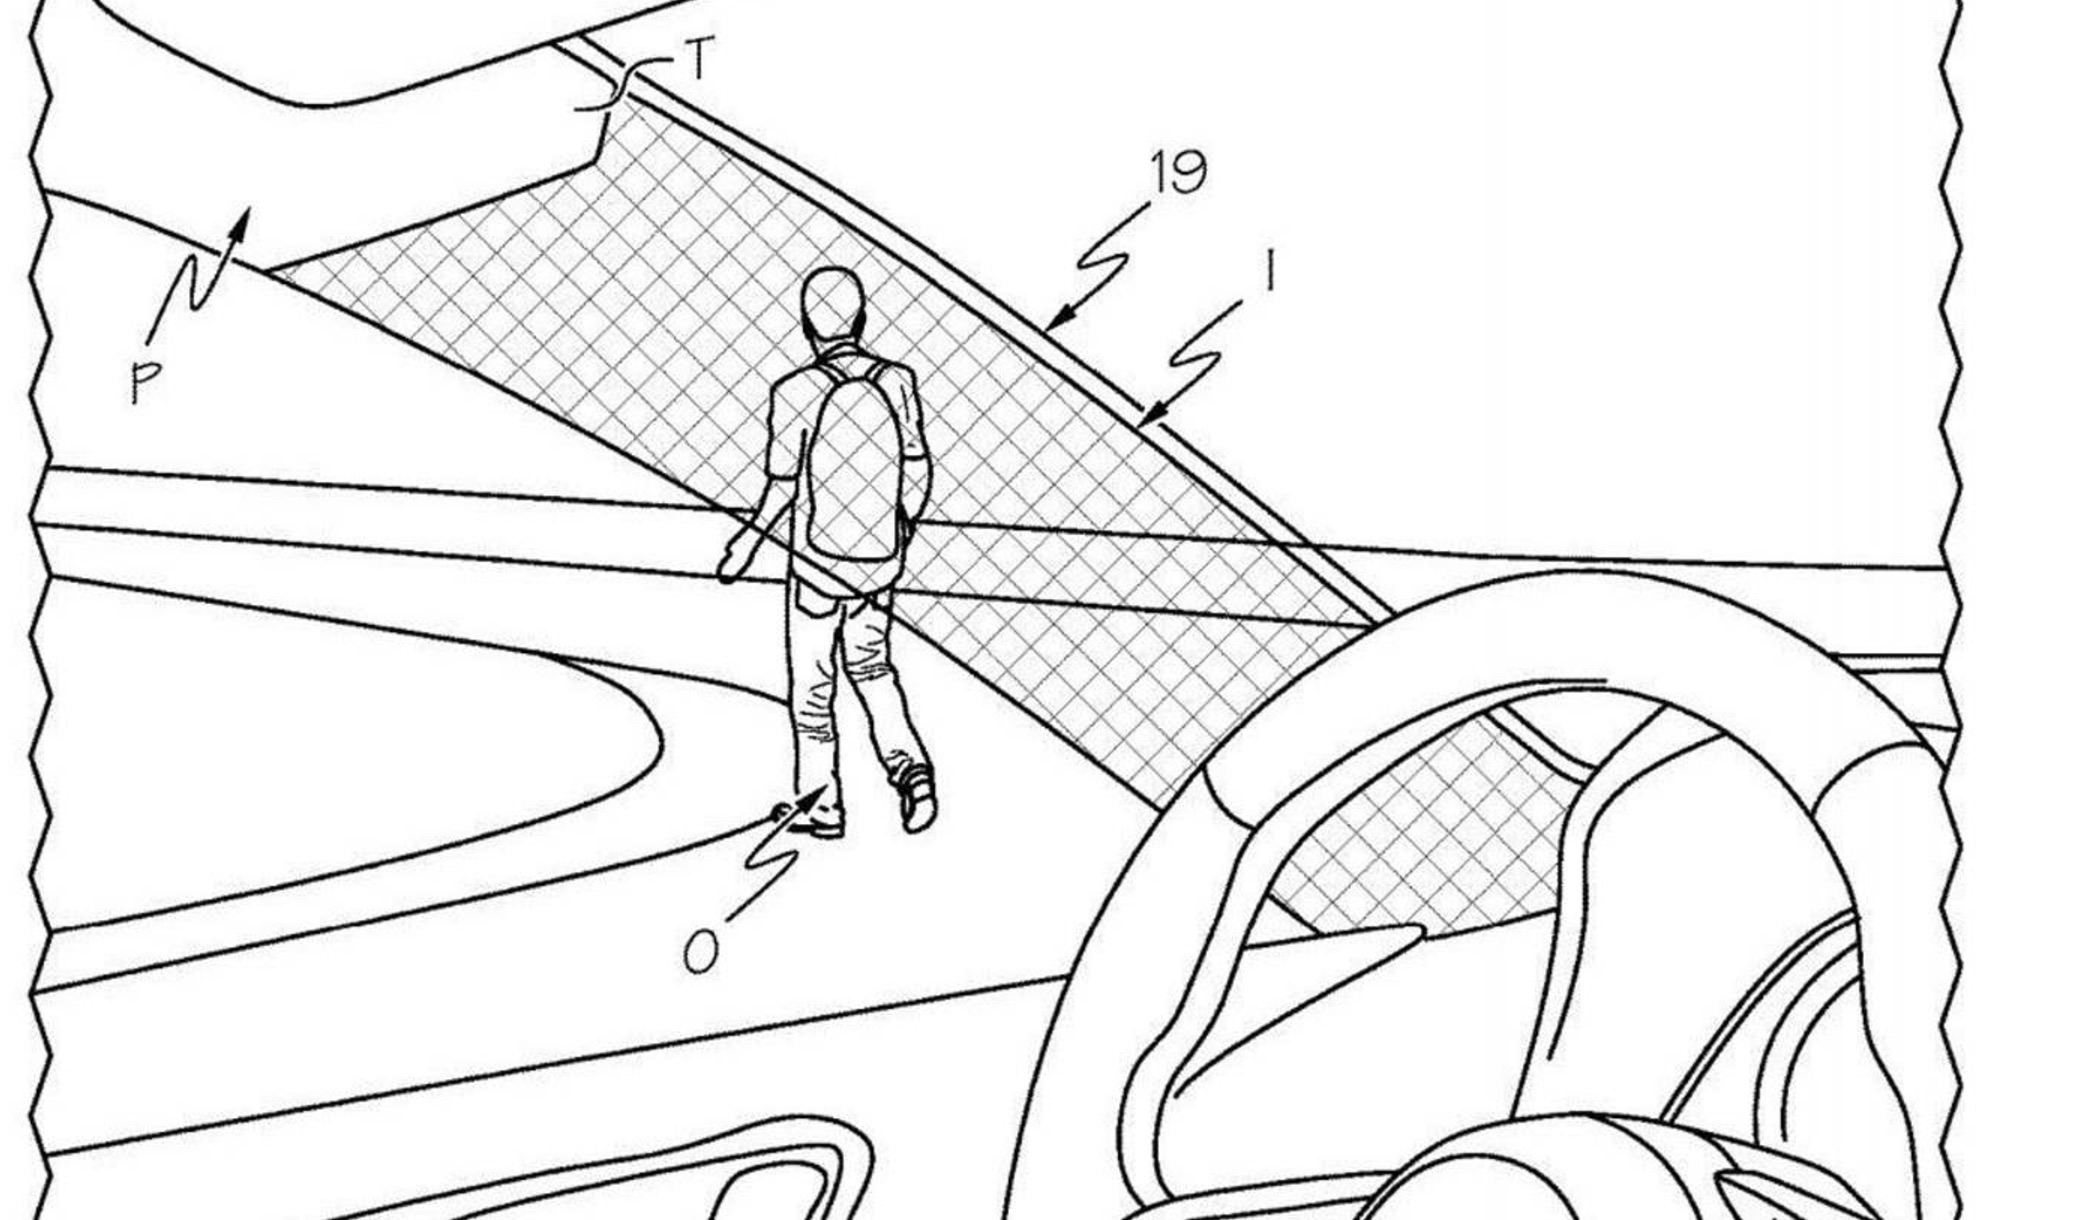 Toyota Patent Shows Device That Can Make Car Pillars